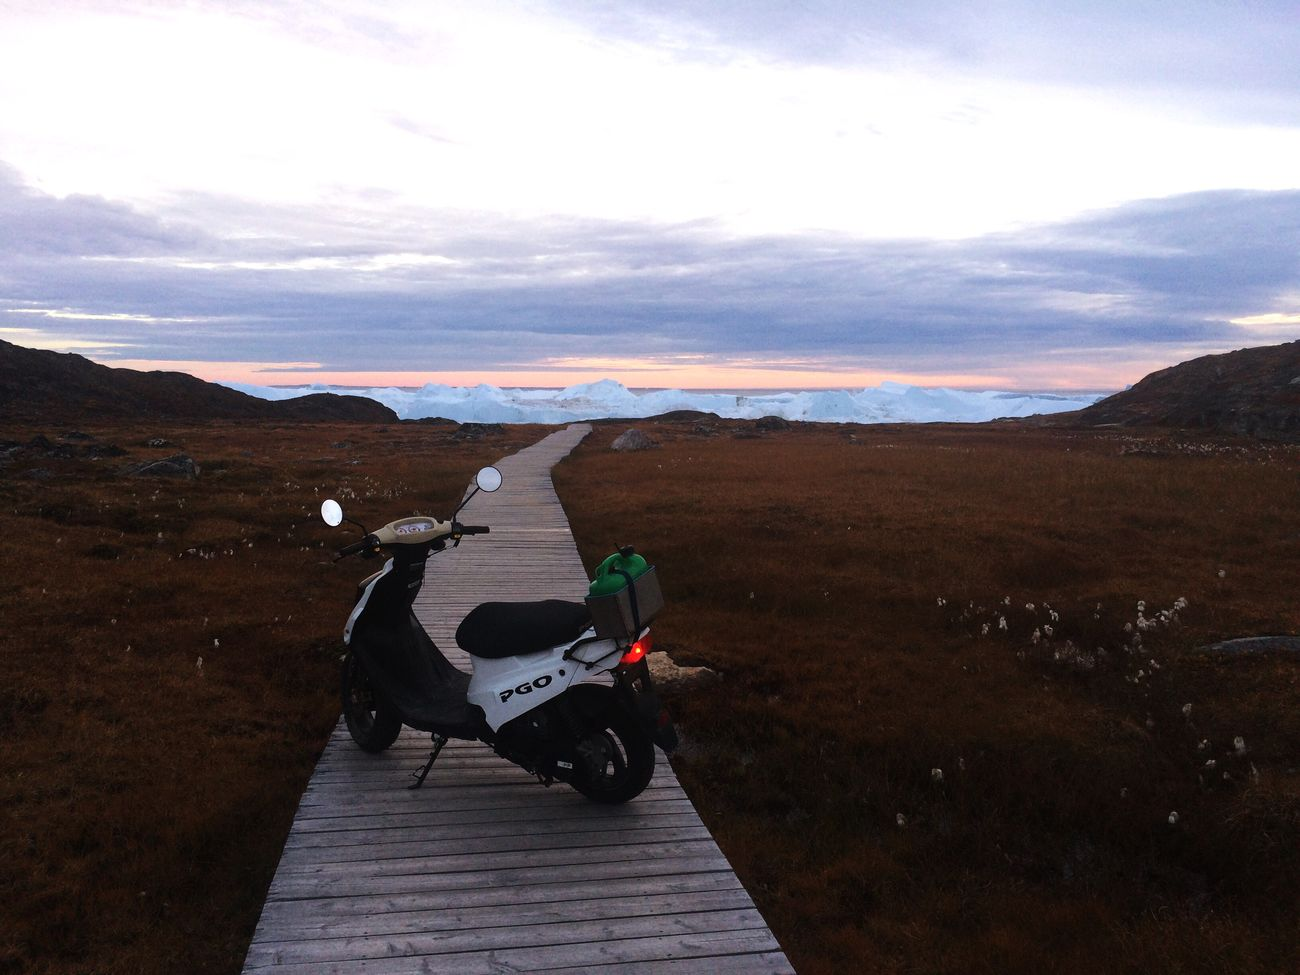 Sermemiut Ilulissat Greenland Mode Of Transport Land Vehicle Mountain Wooden Path Scooter Moped Outdoors Fall Colors Icefjord Iceberg Scenics Beauty In Nature Motorcycle Adventure Transportation